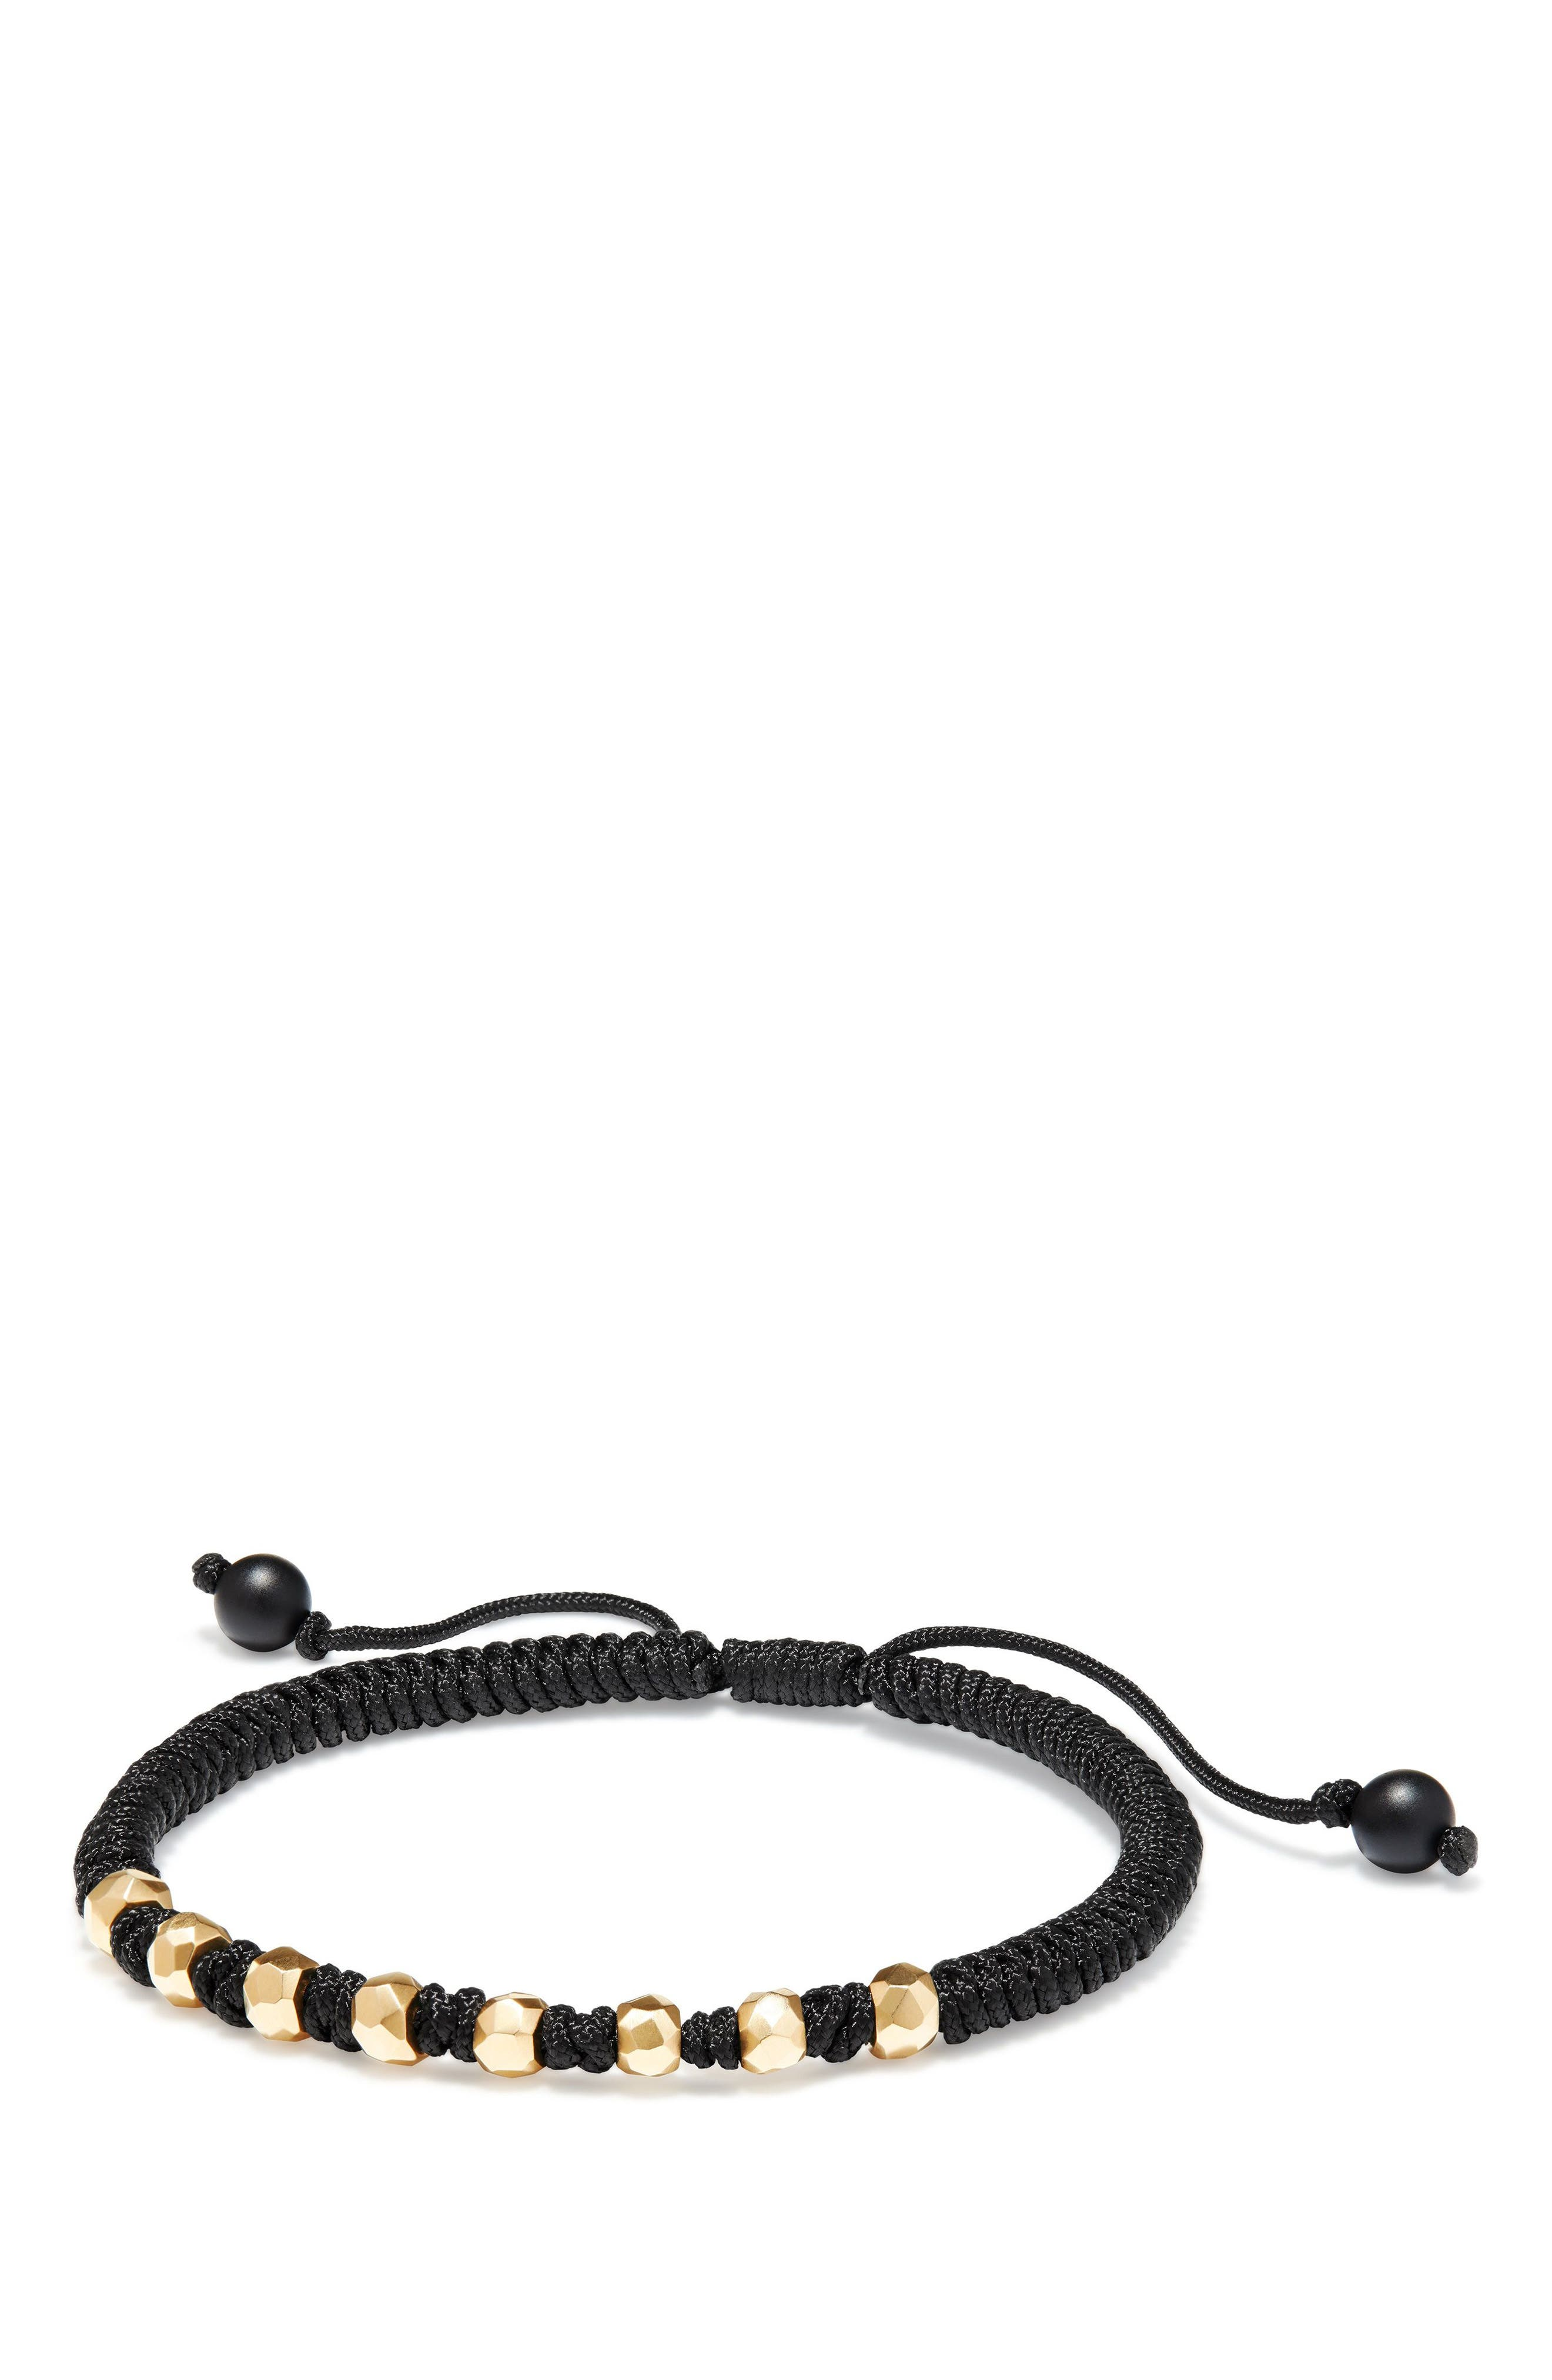 DY Fortune Woven Bracelet with Black Onyx in 18K Gold,                         Main,                         color, BLACK